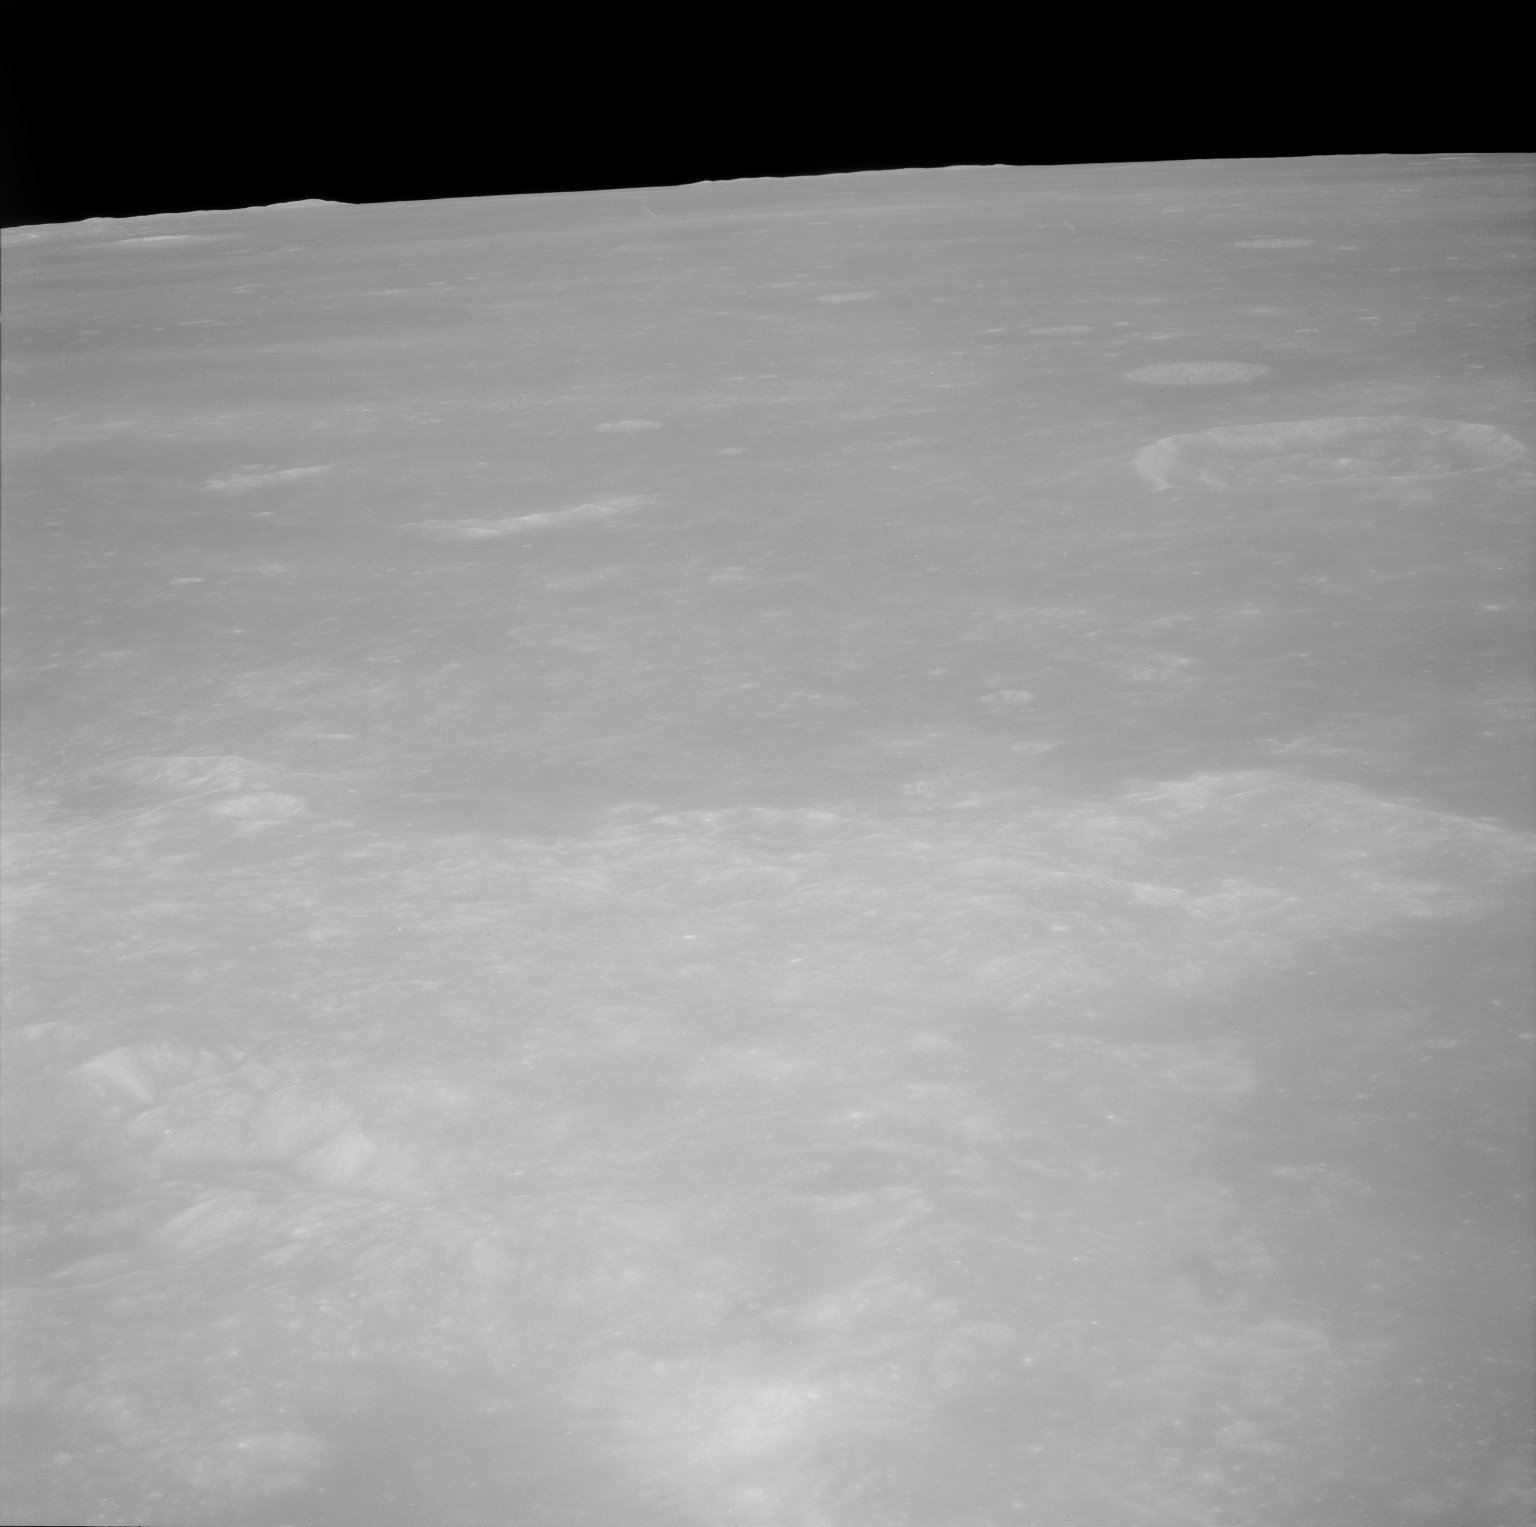 Apollo 11 Mission image - Partial TO 80 and the Maskelyne A Crater